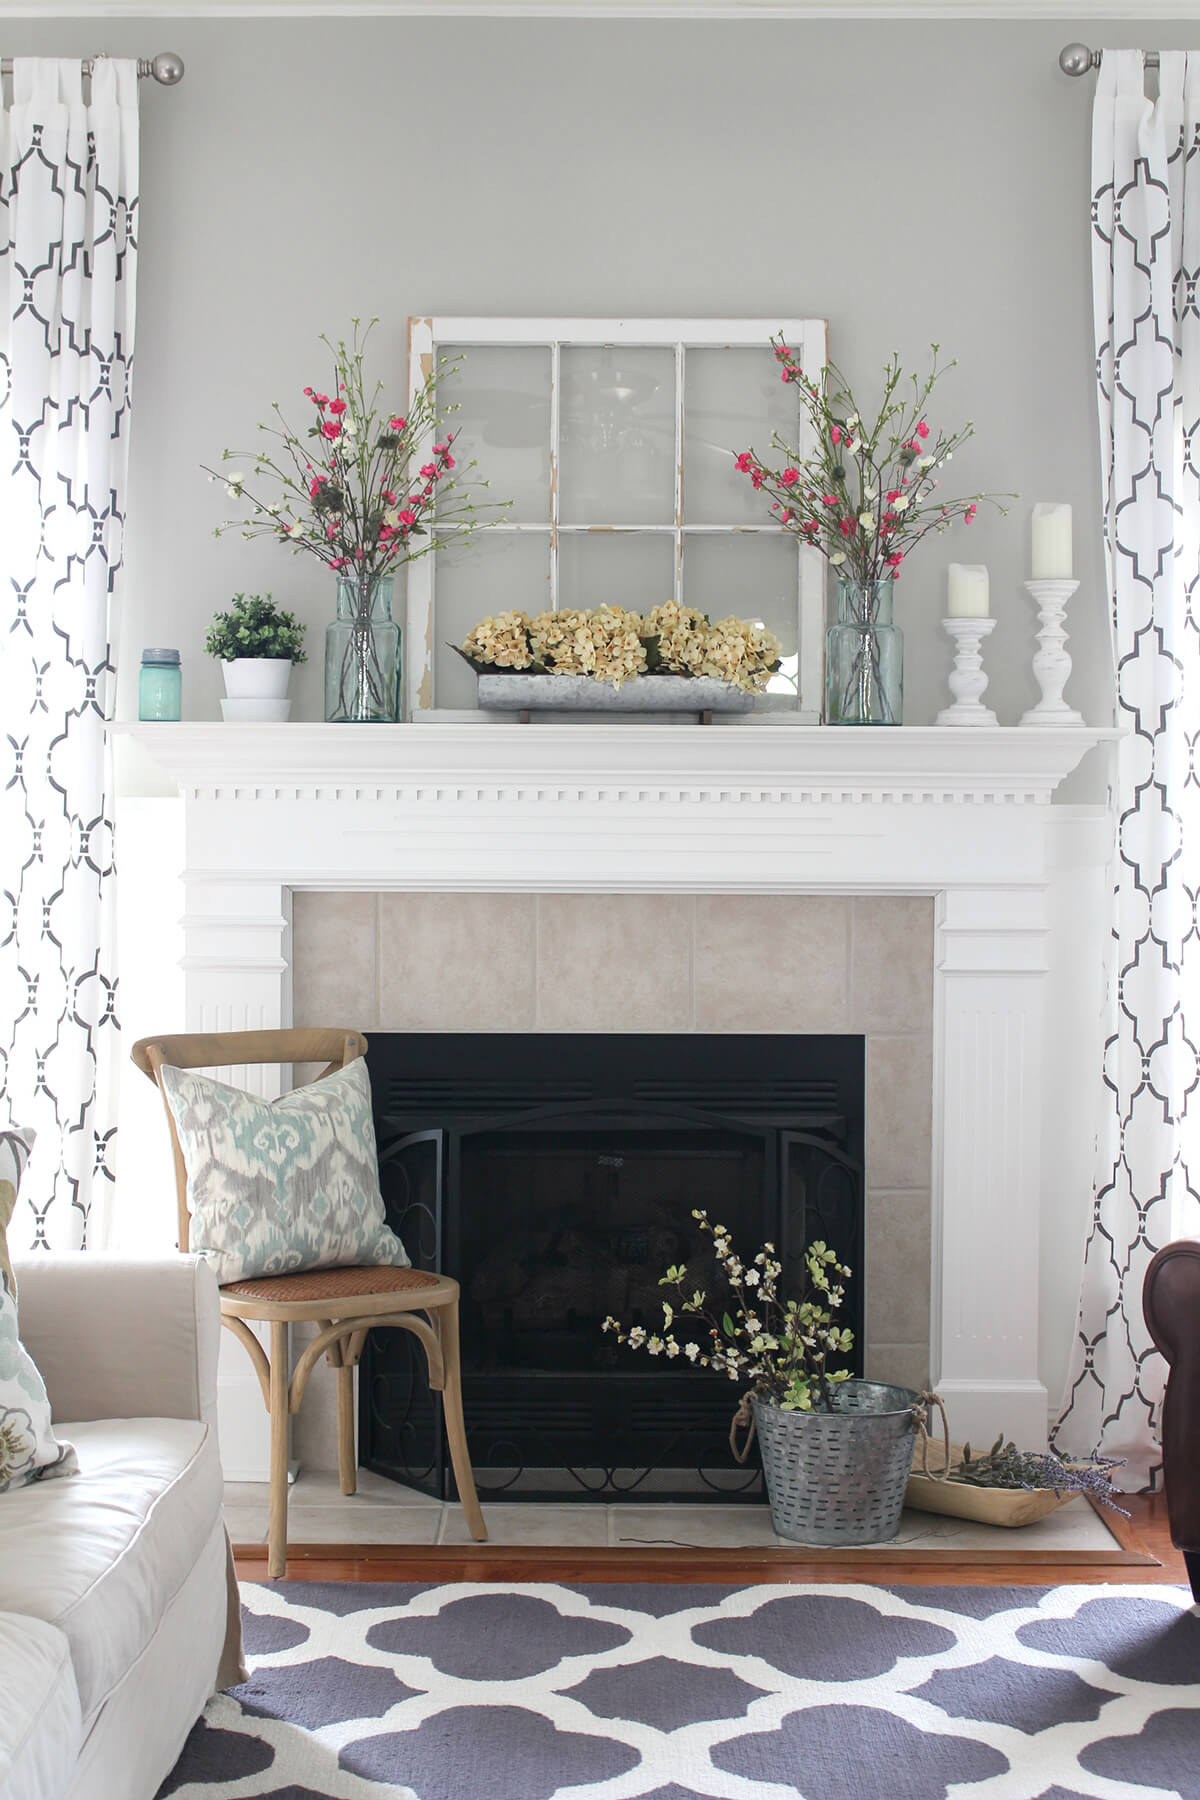 light and feminine country fireplace display - Decorating Ideas For Living Rooms With Fireplaces